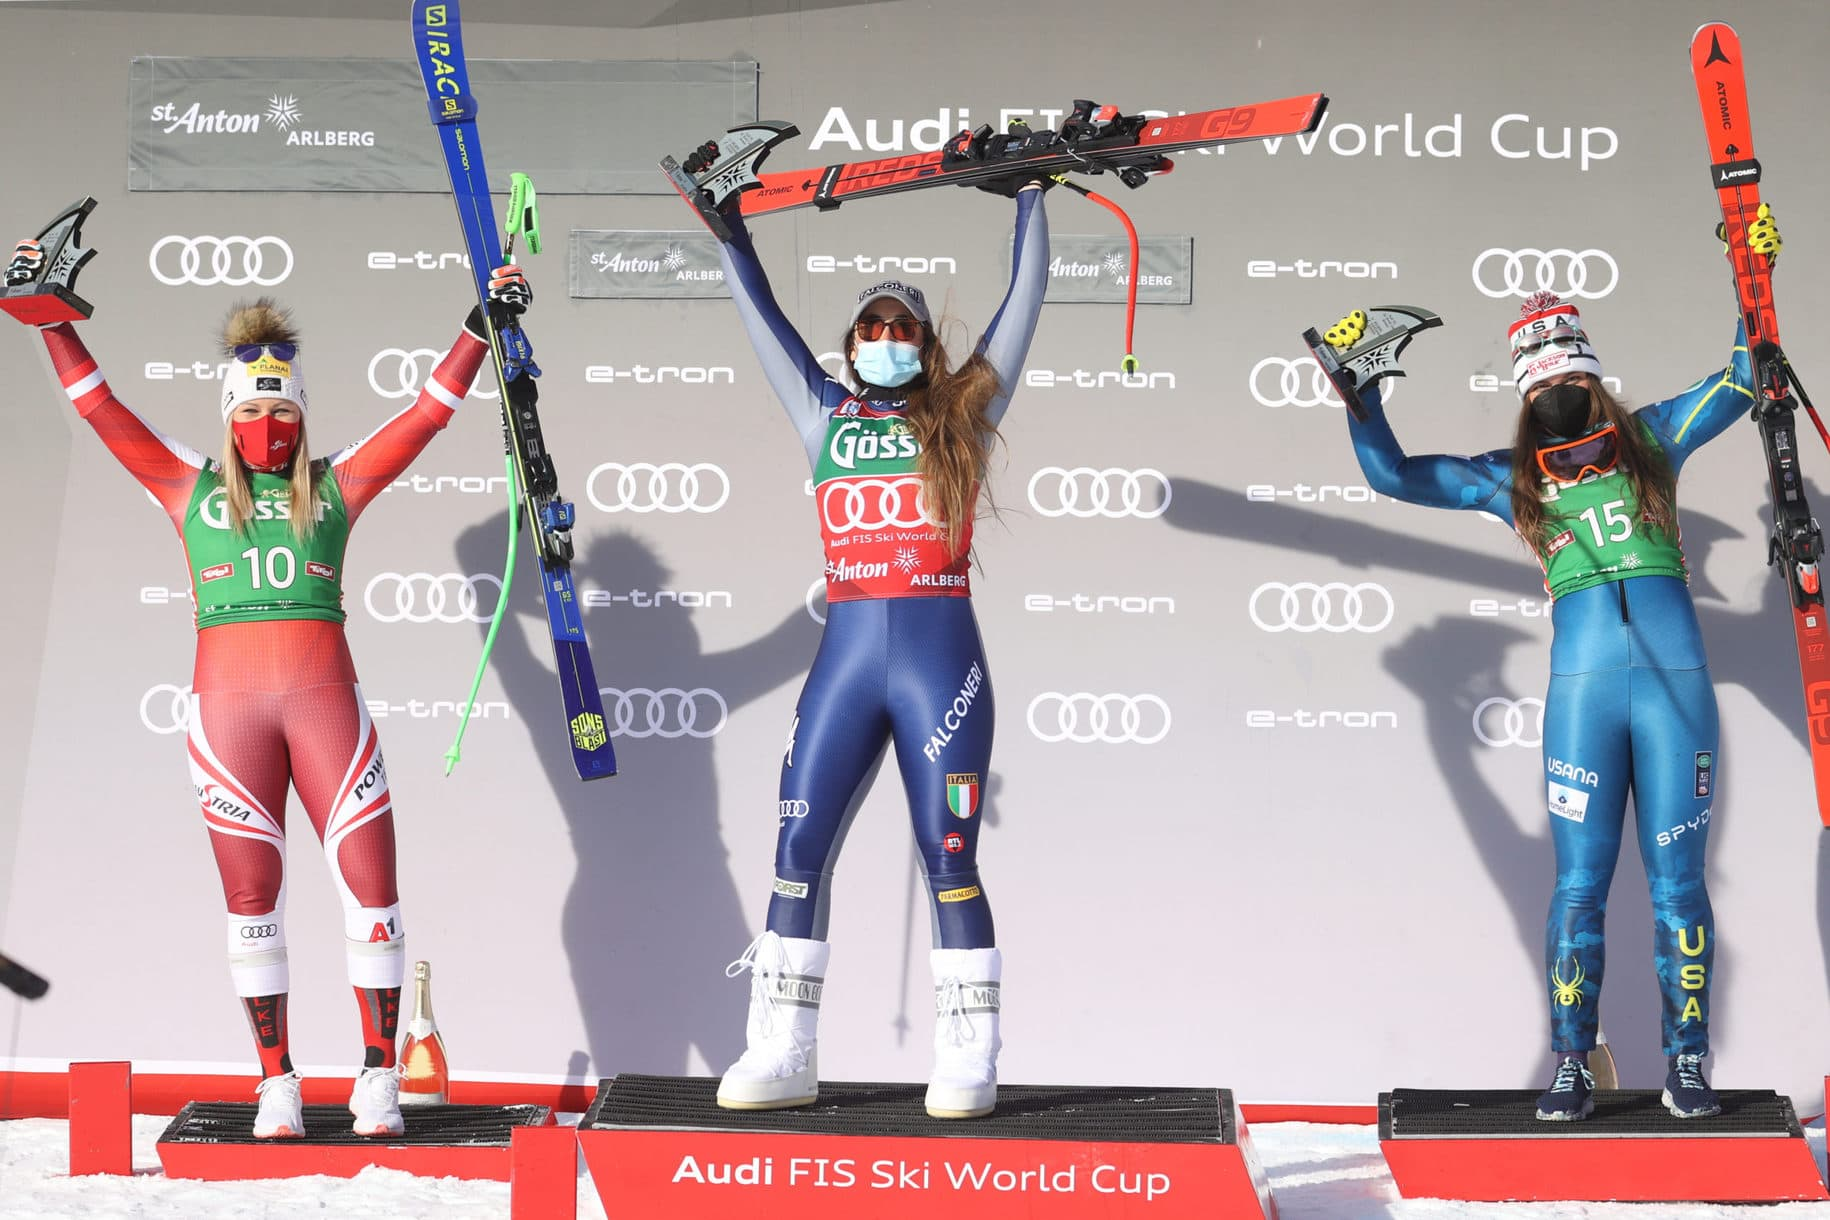 SANKT ANTON,AUSTRIA,09.JAN.21 - ALPINE SKIING - FIS World Cup, downhill, ladies, award ceremony. Image shows Tamara Tippler (AUT), Sofia Goggia (ITA) and Breezy Johnson (USA). Photo: GEPA pictures/ Harald Steiner